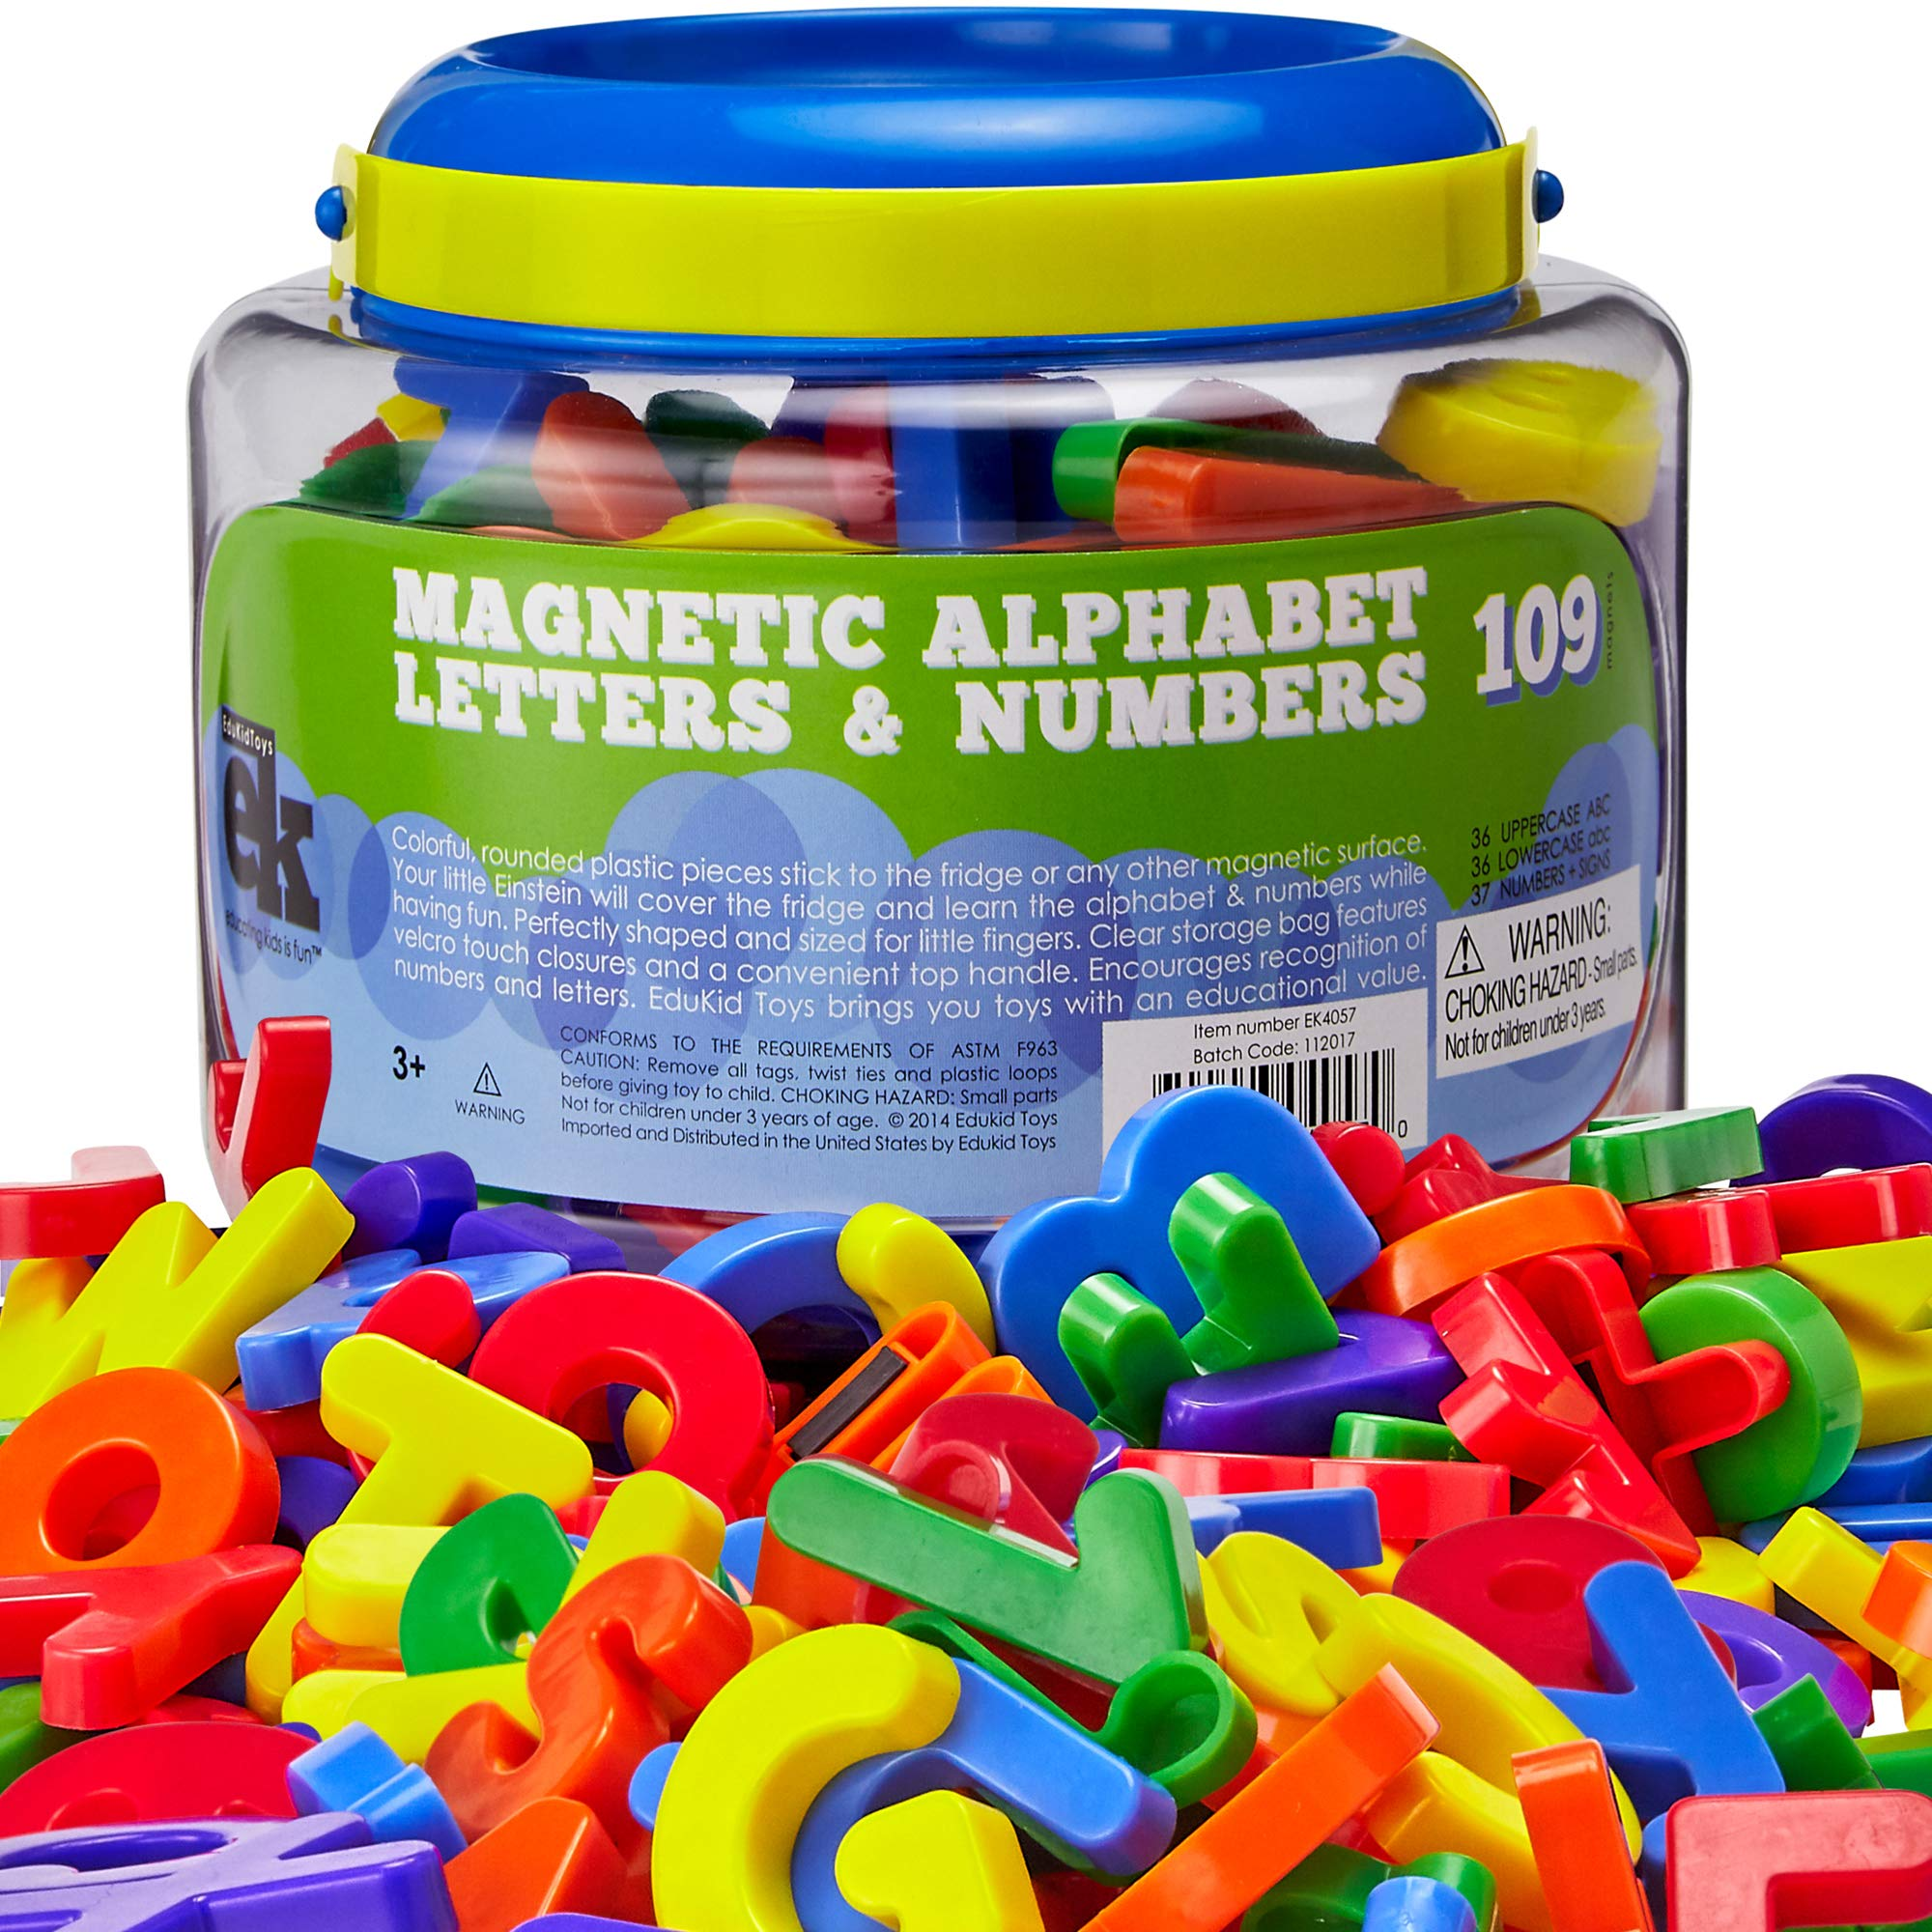 EduKid Toys ABC Magnets - 109 Magnetic Alphabet Letters & Numbers with Take Along Bucket by EduKid Toys